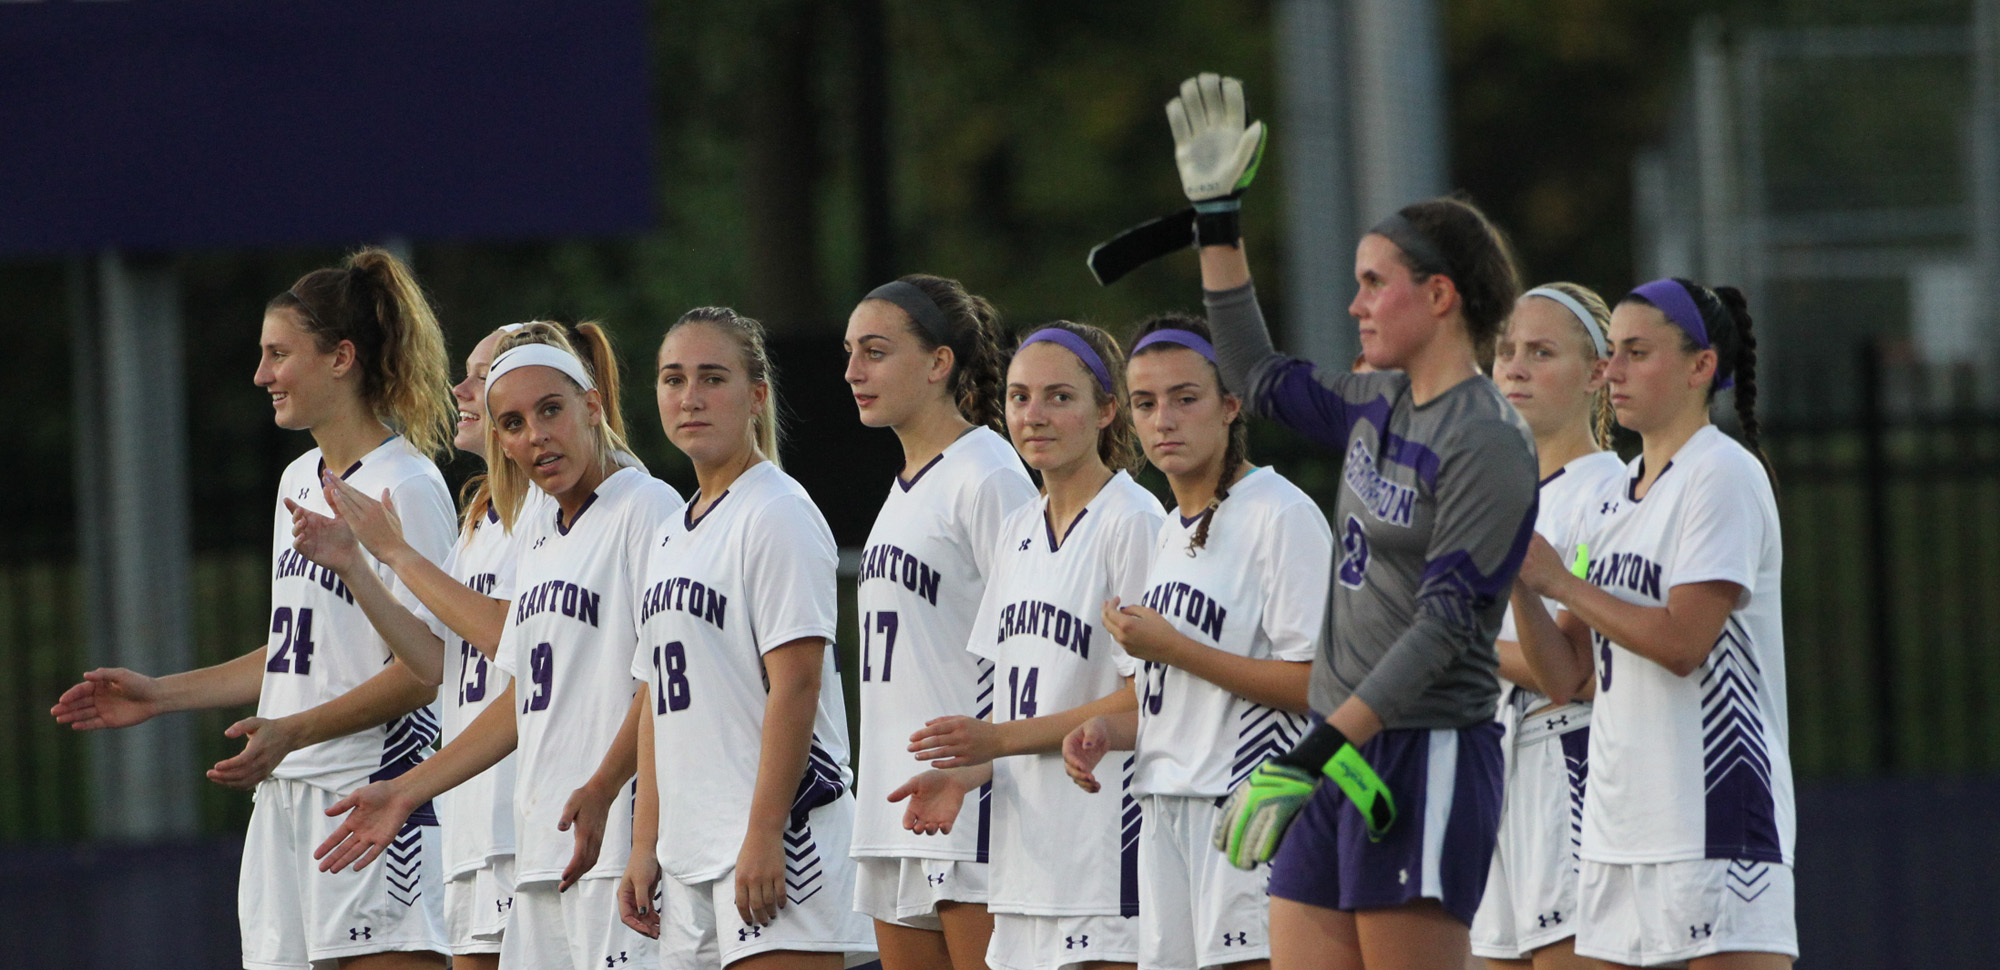 The University of Scranton women's soccer team will attempt to win its seventh Landmark Conference championship on Saturday.